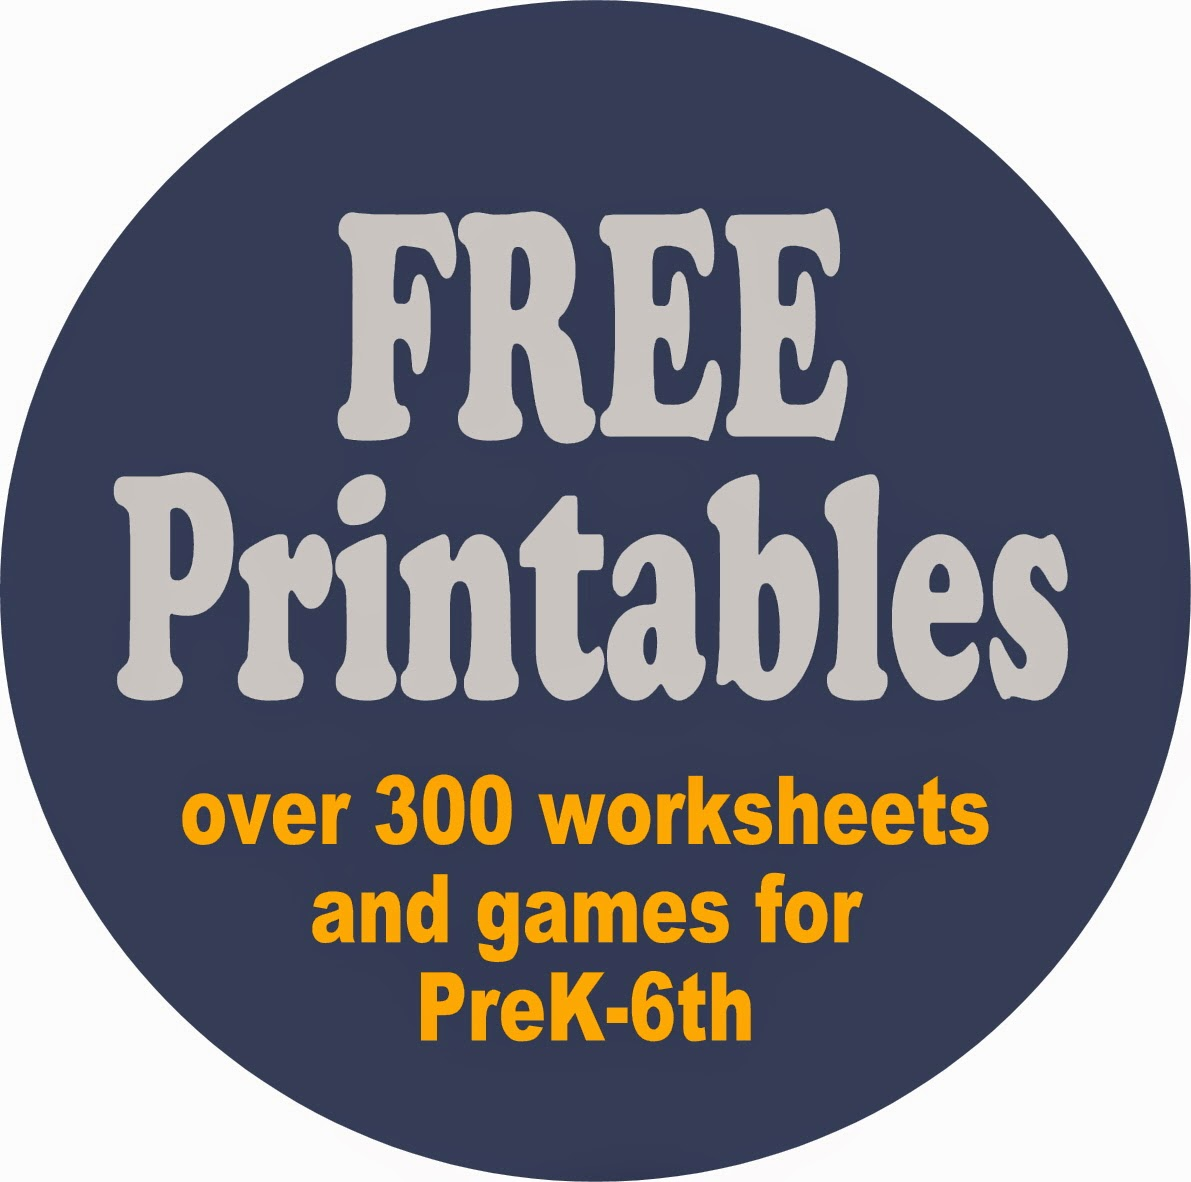 Preschool homework activities – Free Download Worksheets for Kindergarten